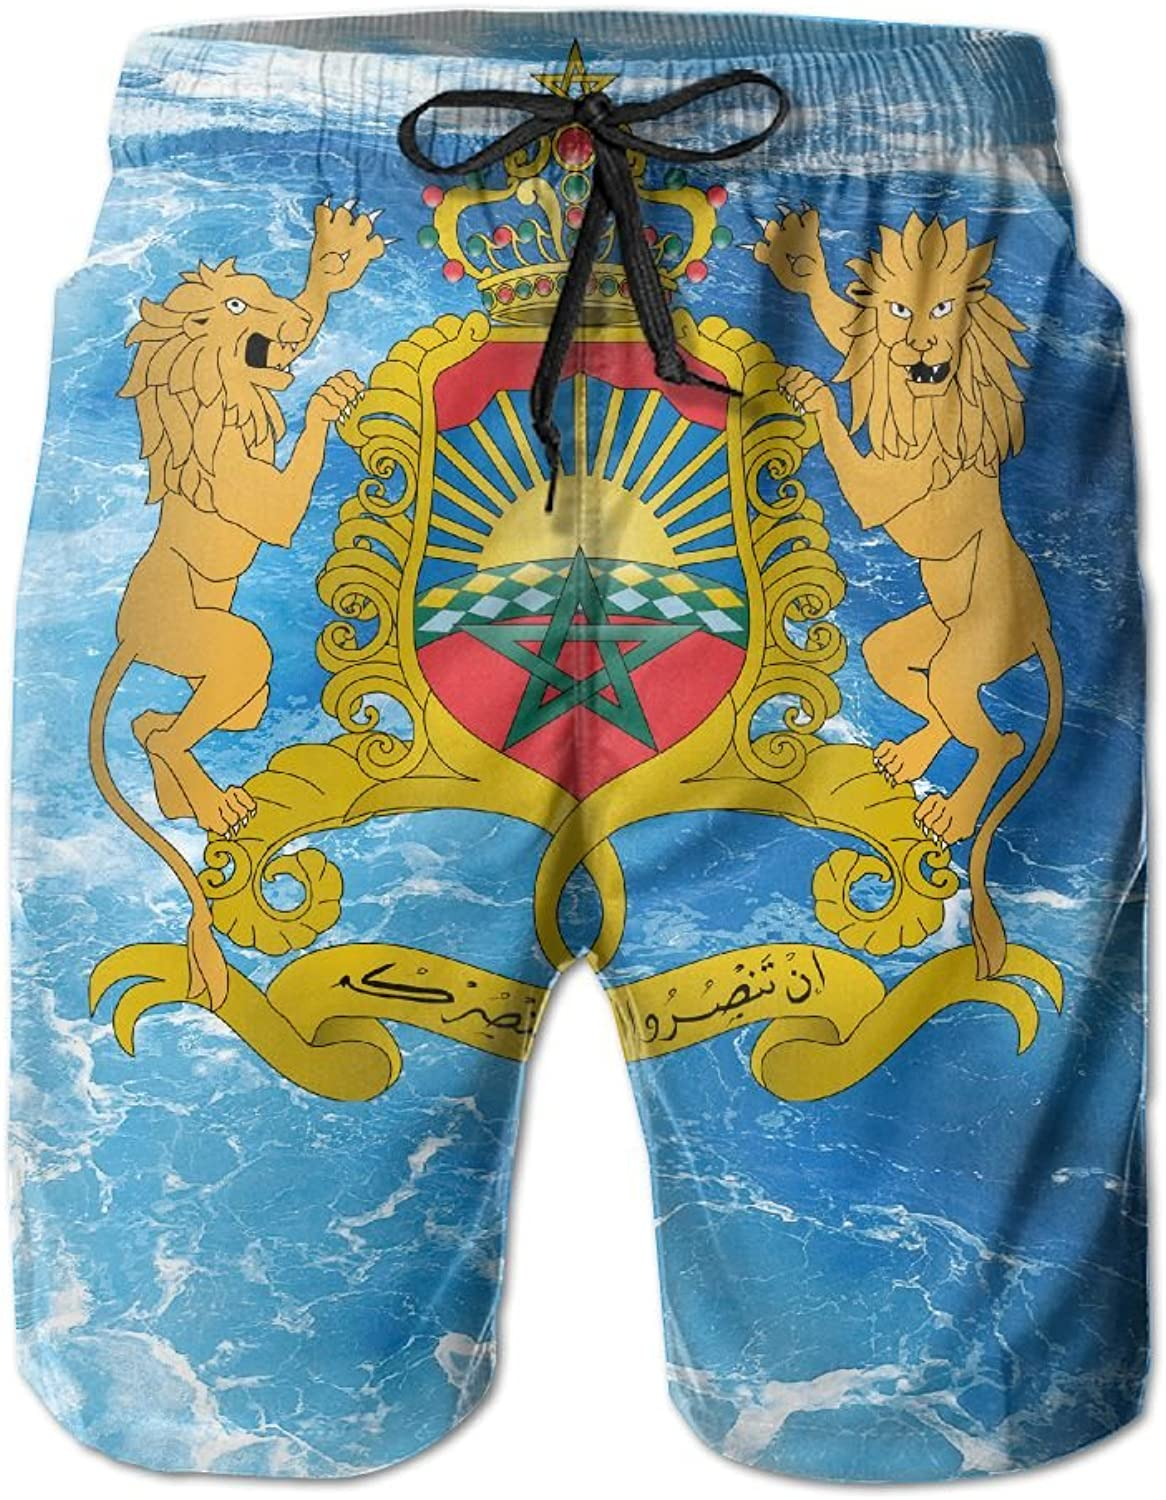 970d7571a6 AKSKXMNN-Coat AKSKXMNN-Coat AKSKXMNN-Coat of Arms of Mgoldcco Mens Swim  Trunks Quick Dry Surf Board Shorts Beach Pant Sportswear 236197